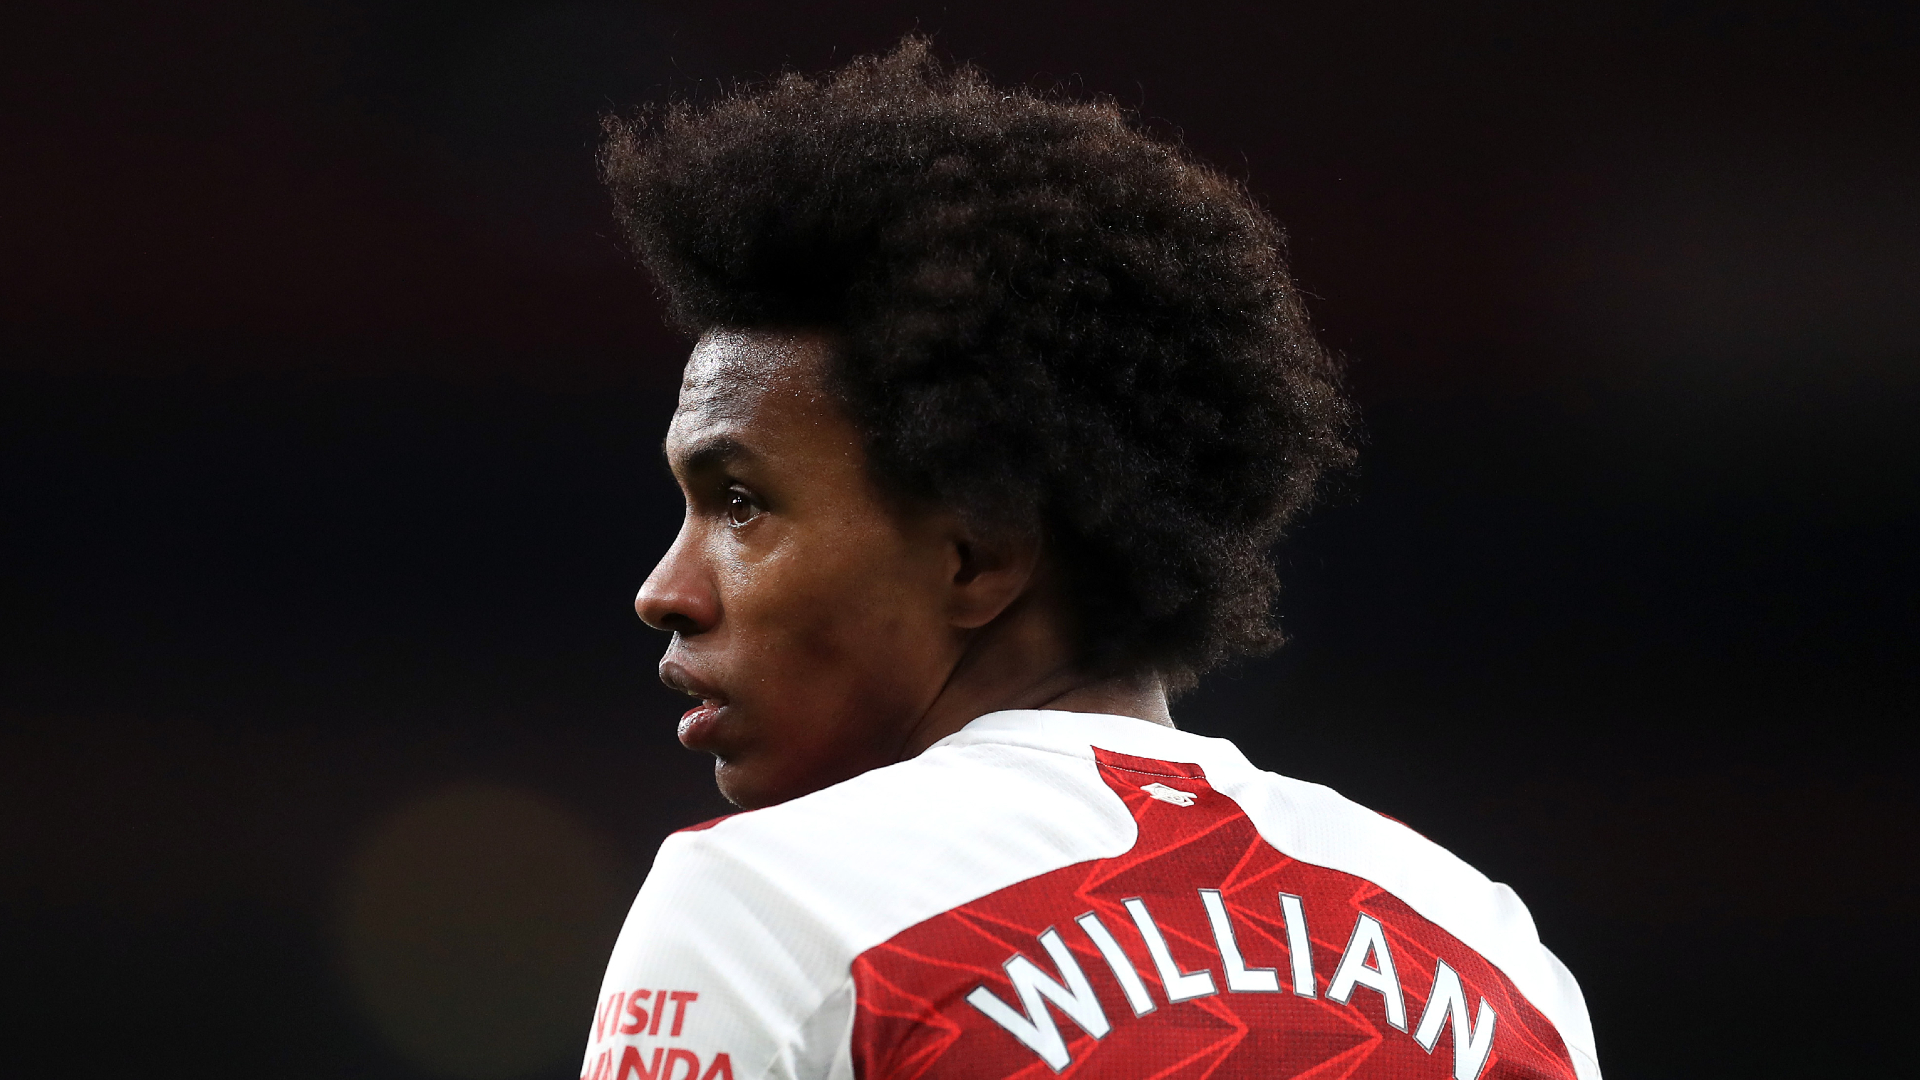 Arsenal in talks with Corinthians over Willian deal